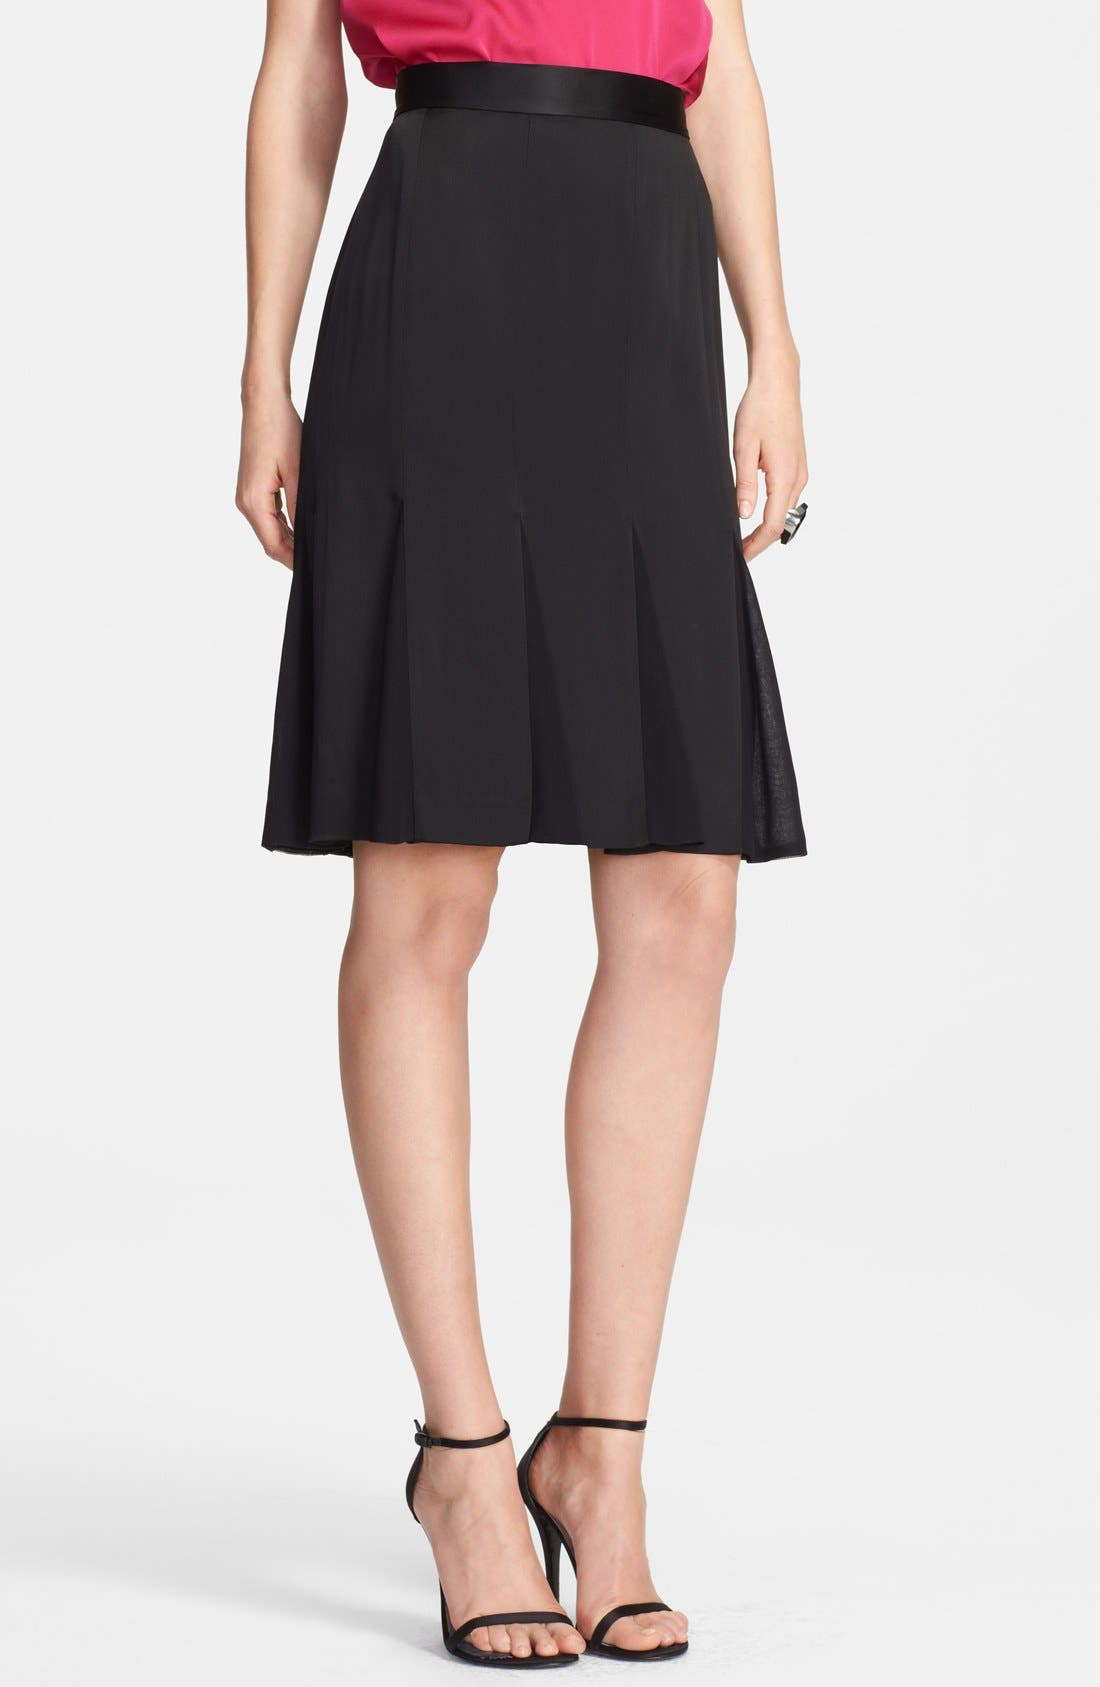 Alternate Image 1 Selected - St. John Collection Liquid Crepe & Chiffon Skirt